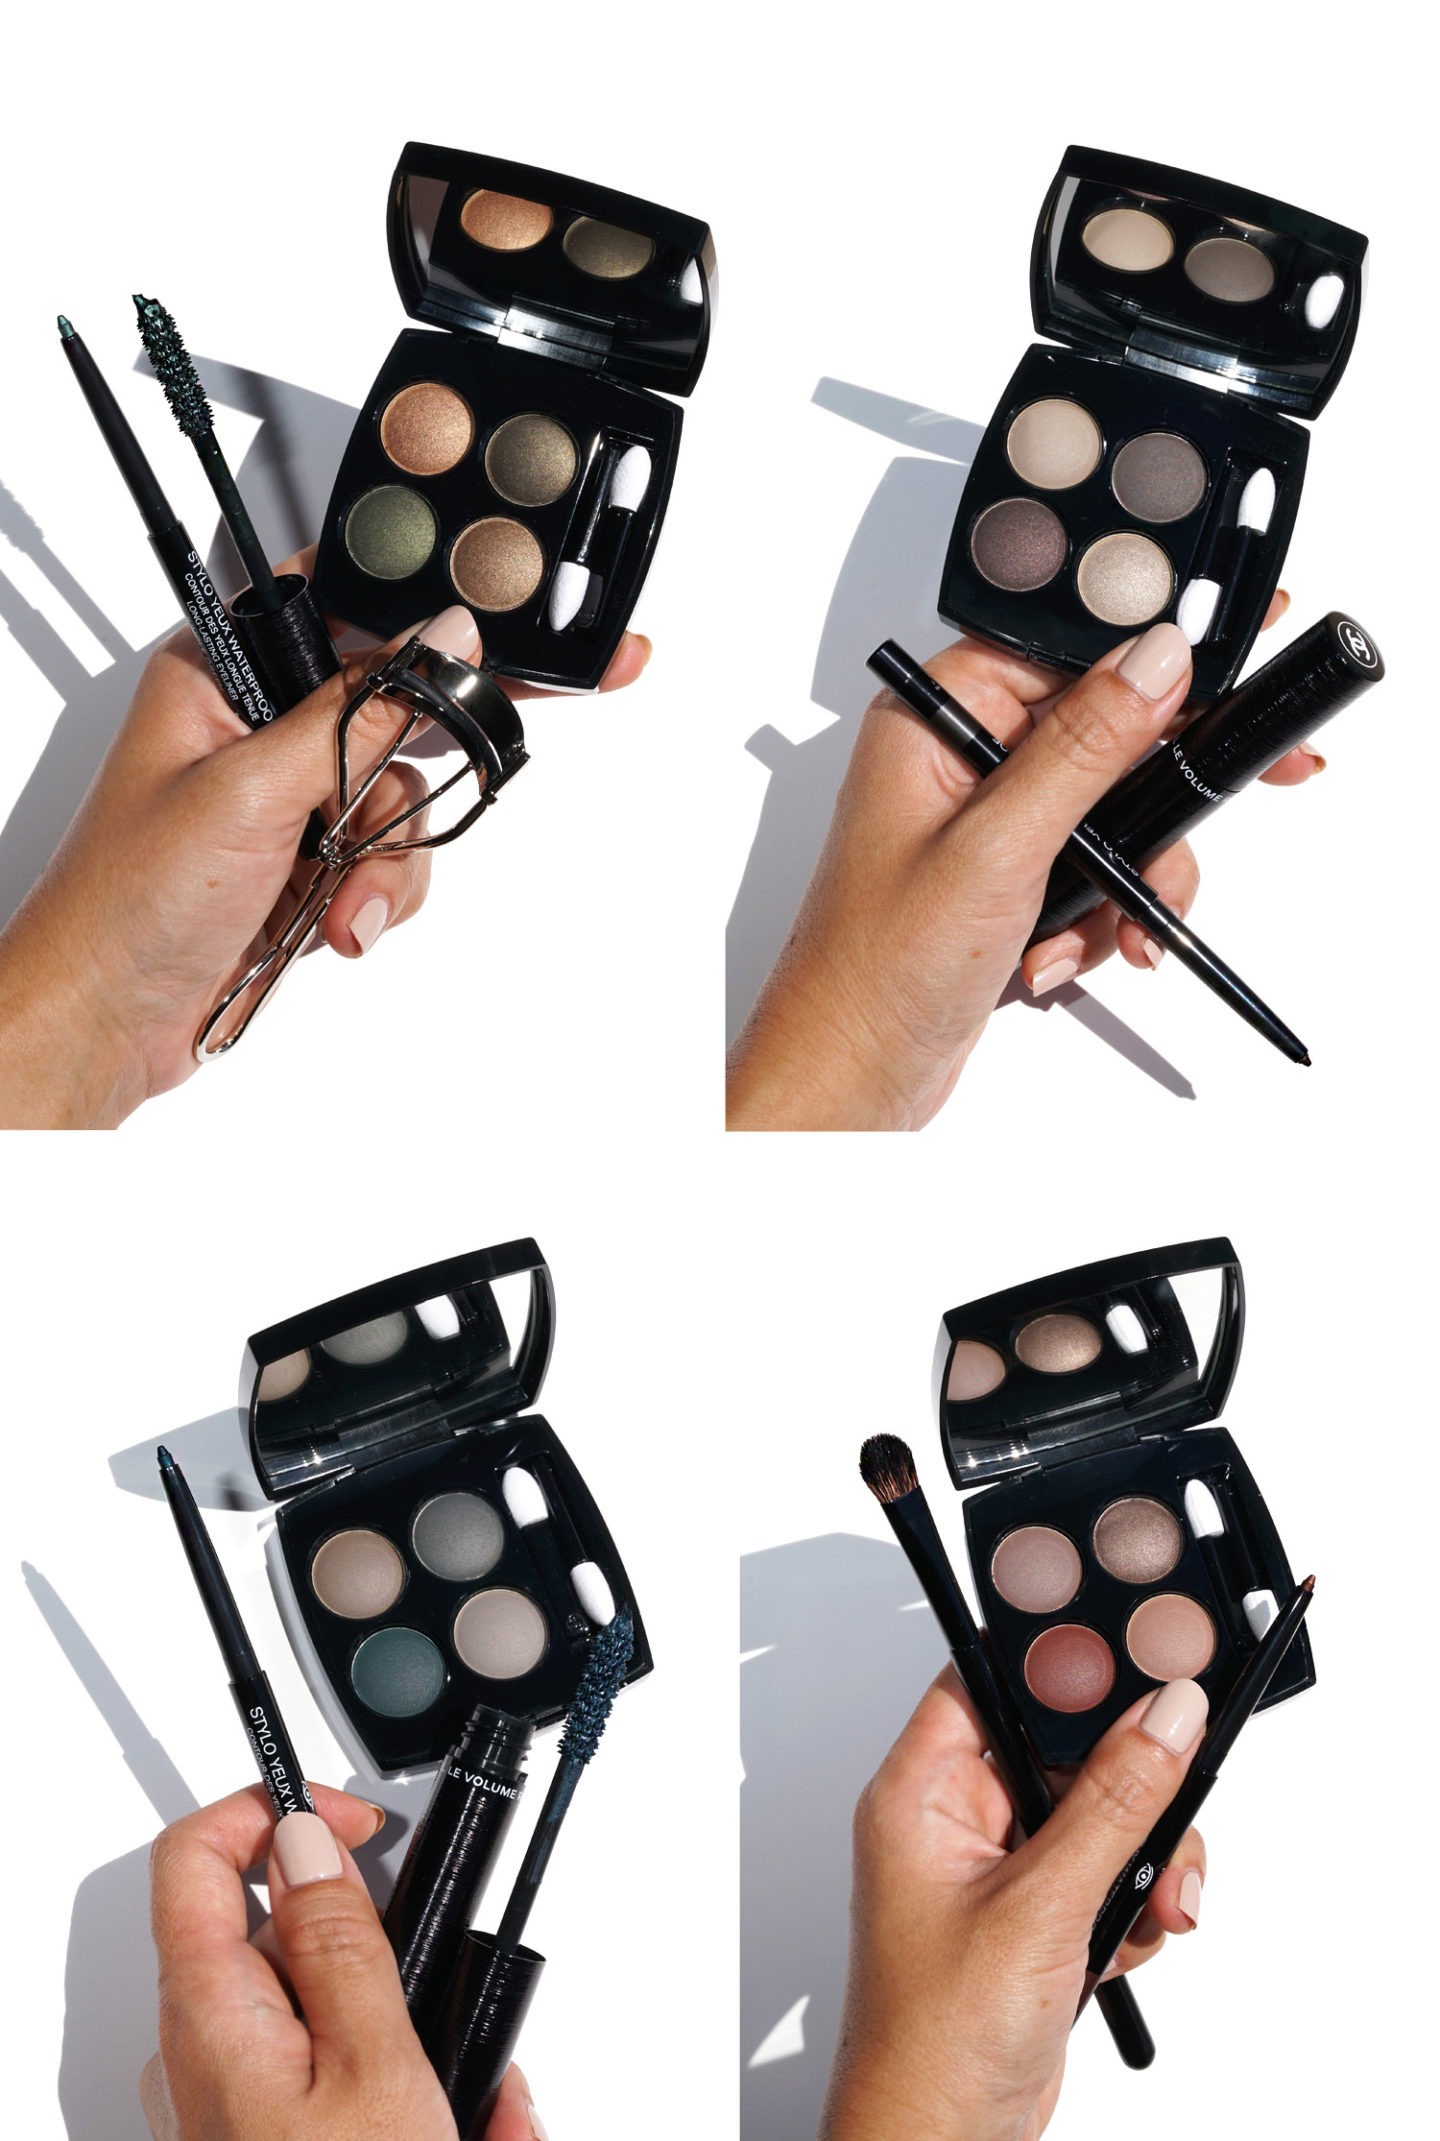 Chanel Beauty - La nouvelle collection Eye Review et Swatches | Le look book beauté